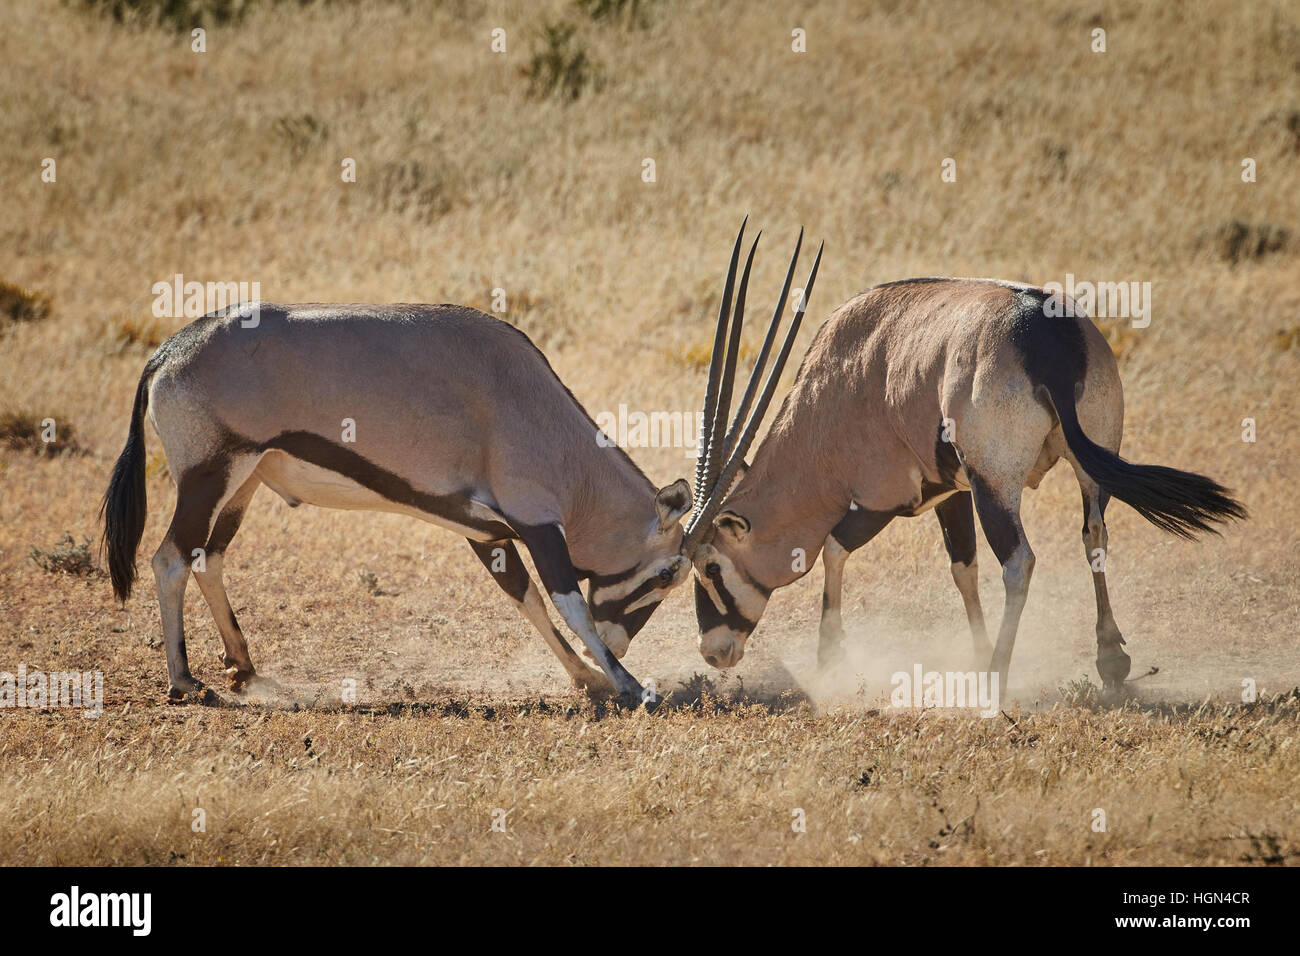 A pair of Gemsbok (Oryx) rut in the Kgalagadi Transfrontier National Park, South Africa. - Stock Image